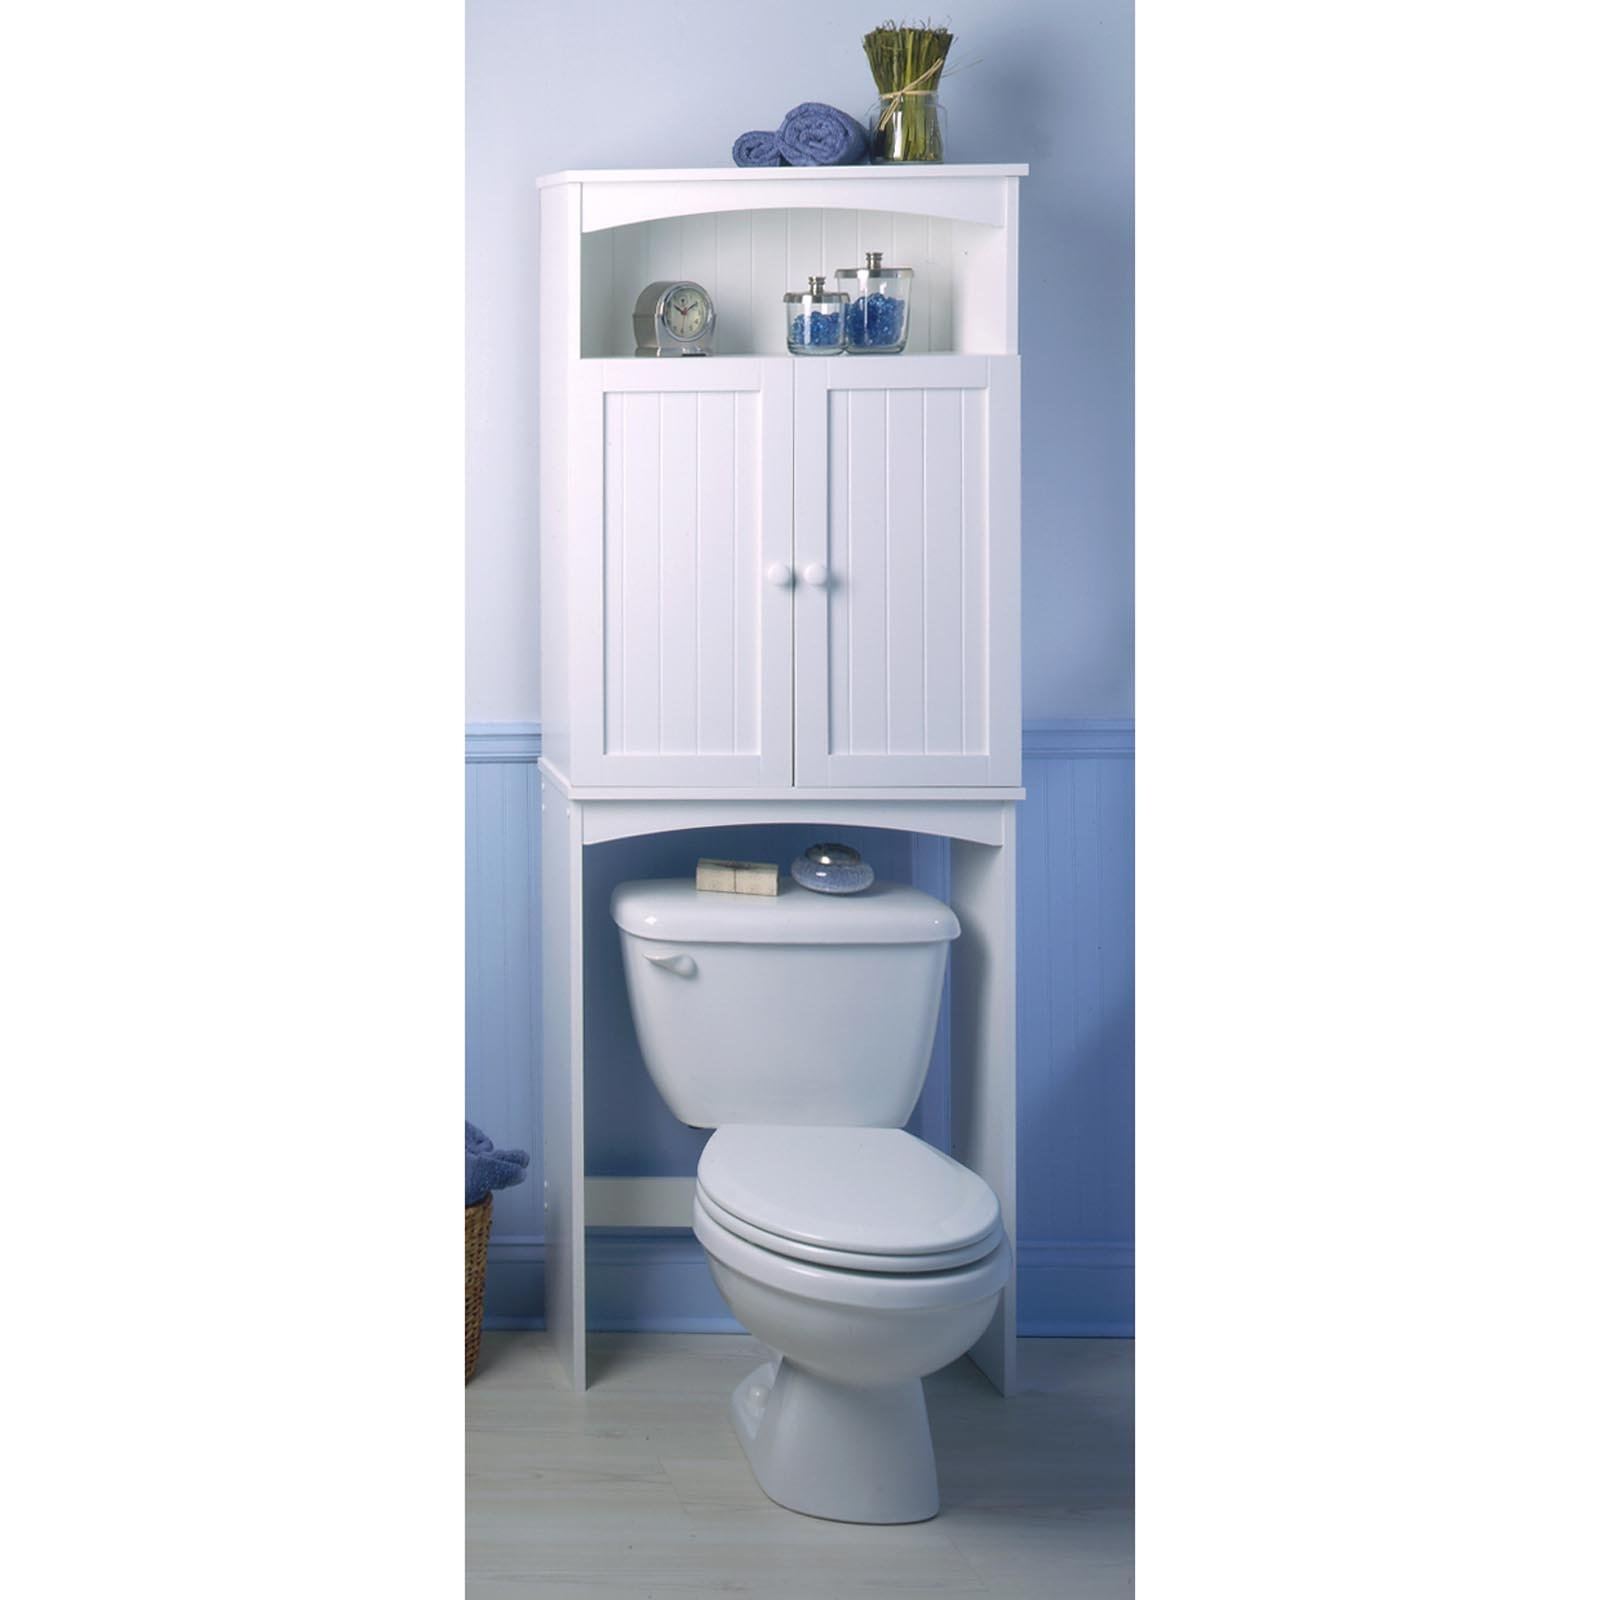 Permalink to Bathroom Space Saver With Cabinet